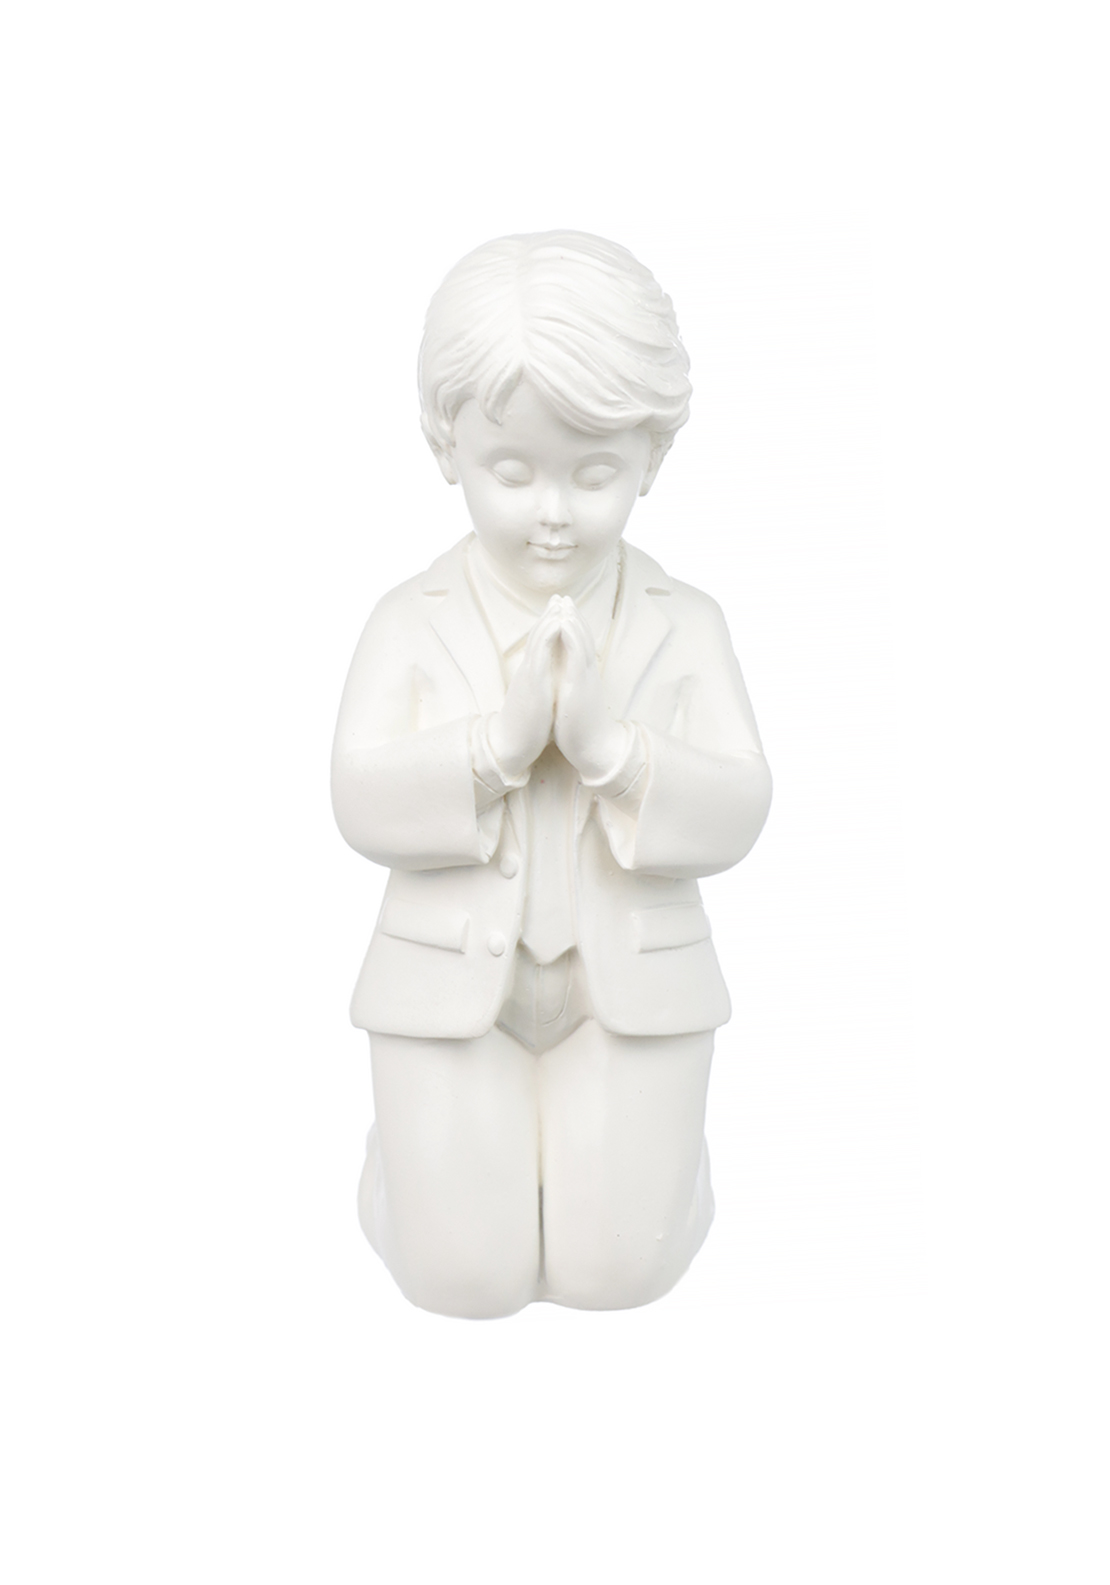 Widdop & Bingham Bless This Child Praying Figurine, Boy